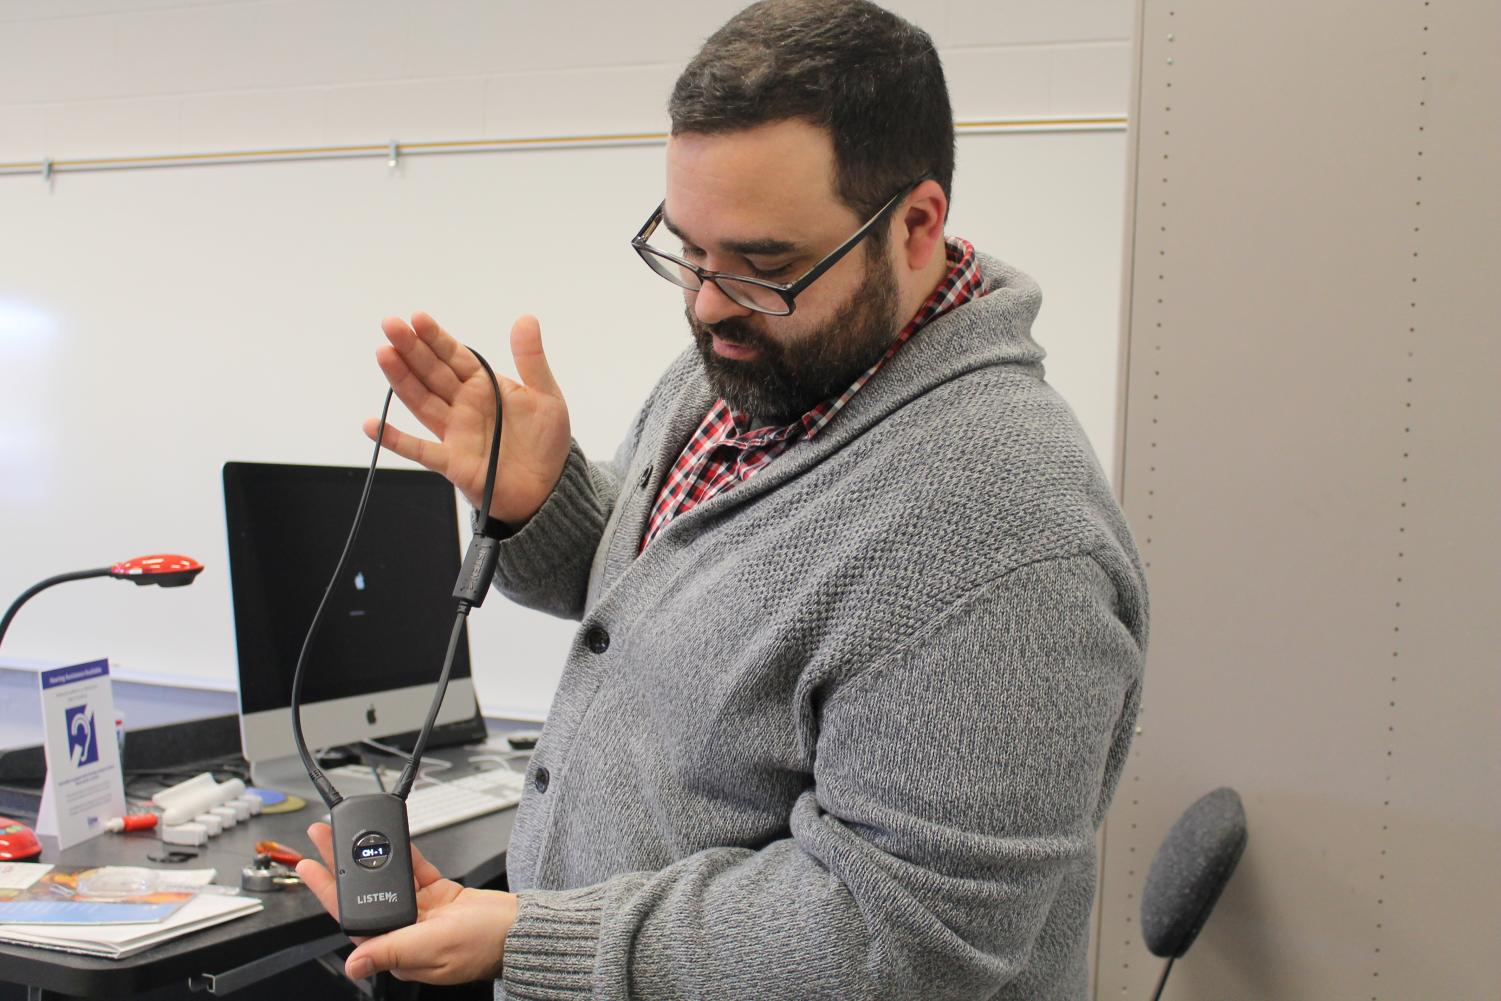 Danny Clements holds an assisted hearing device, which is one of the updated classroom technologies that has been implemented in the past few years thanks to the classroom budget.